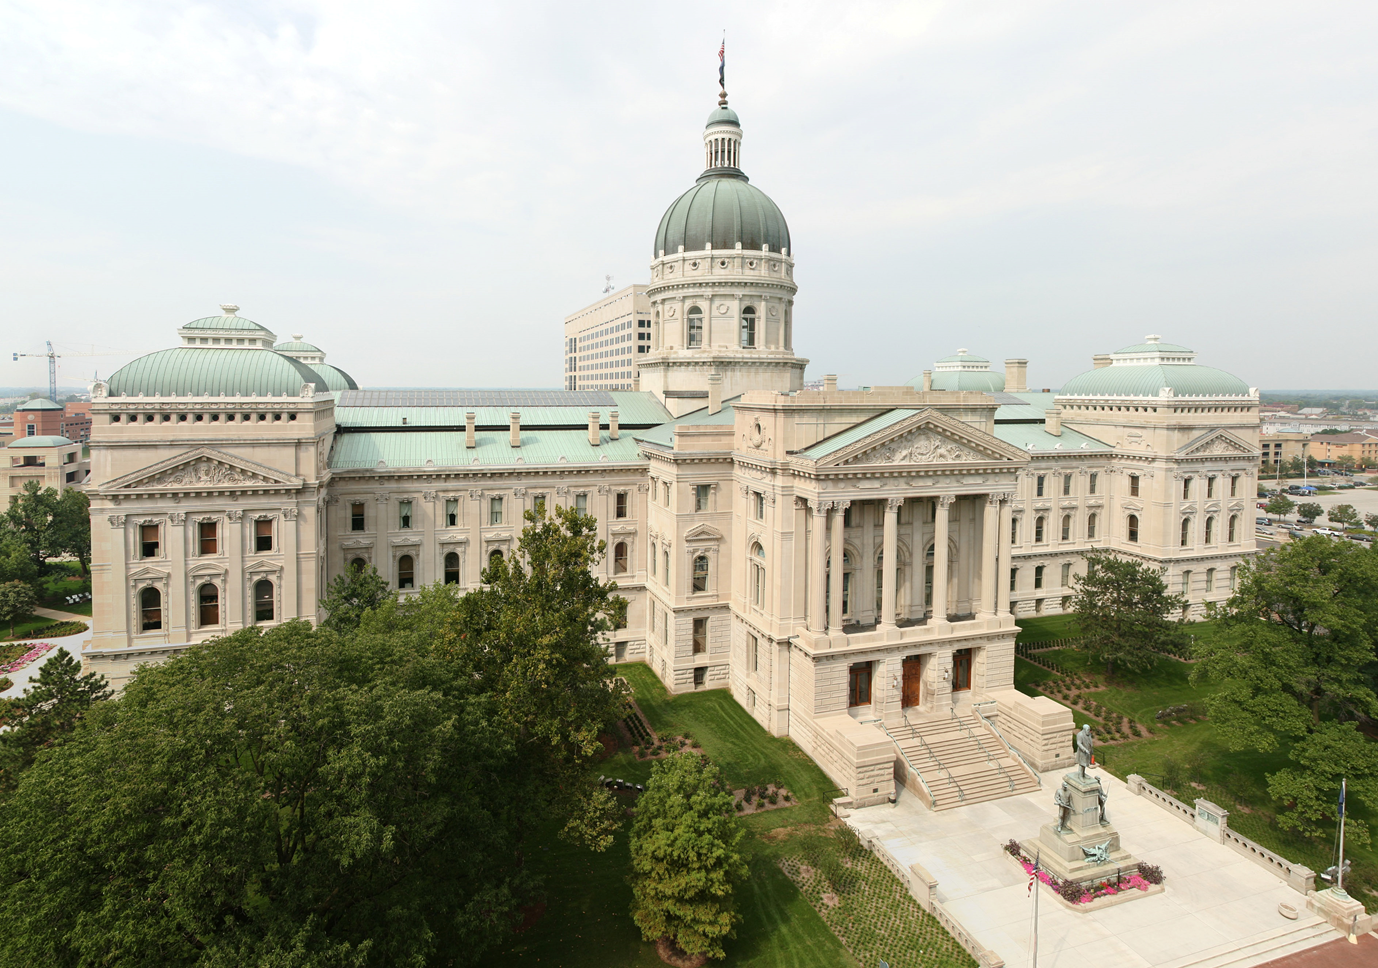 State Lawmakers to Vote Wednesday to Approve Indiana's Budget